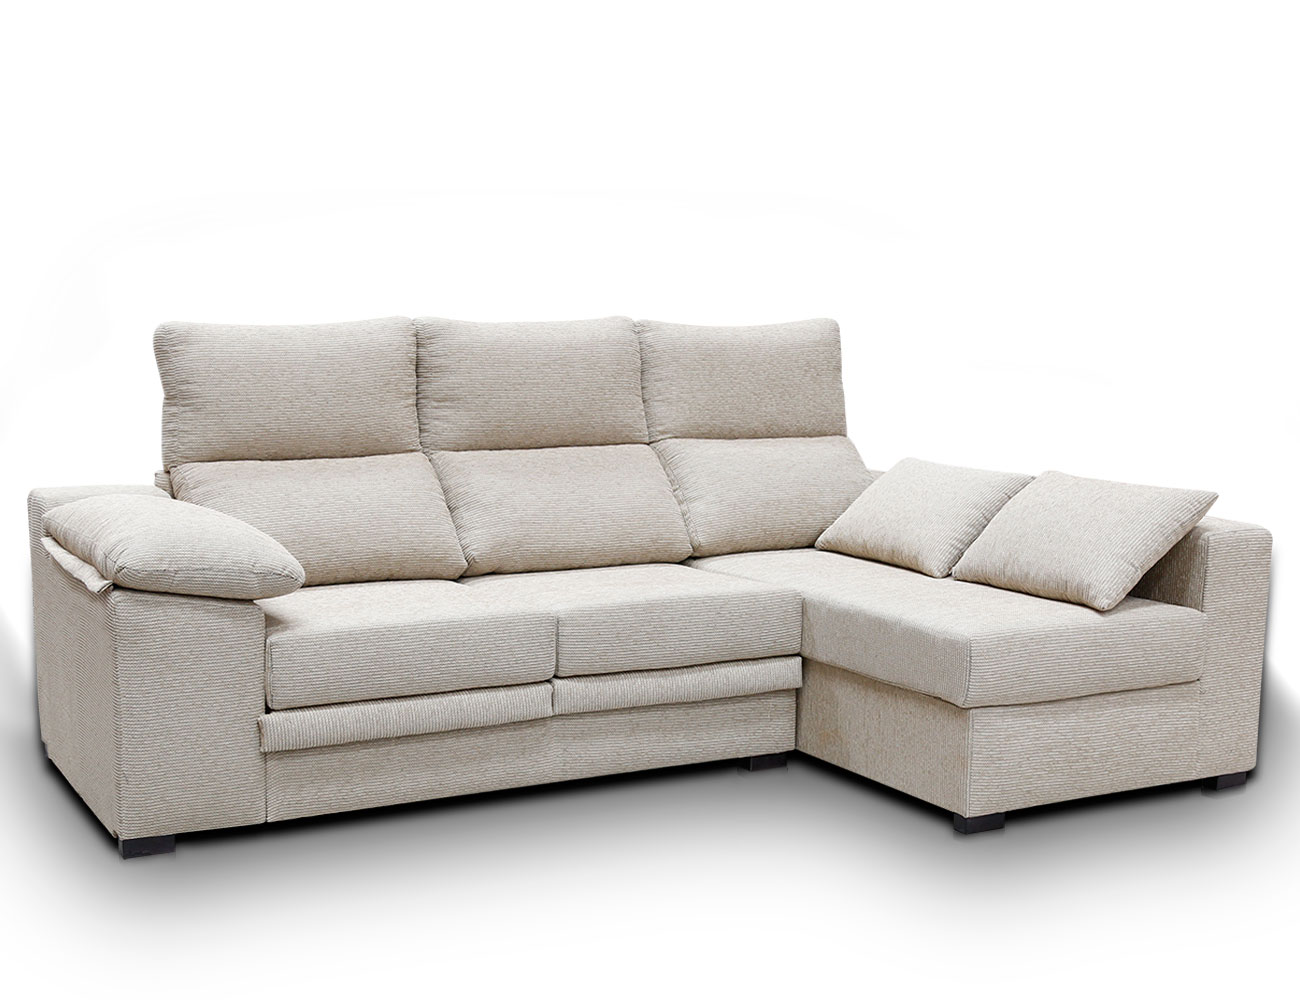 Sofa chaiselongue moderno cojin pardo 1